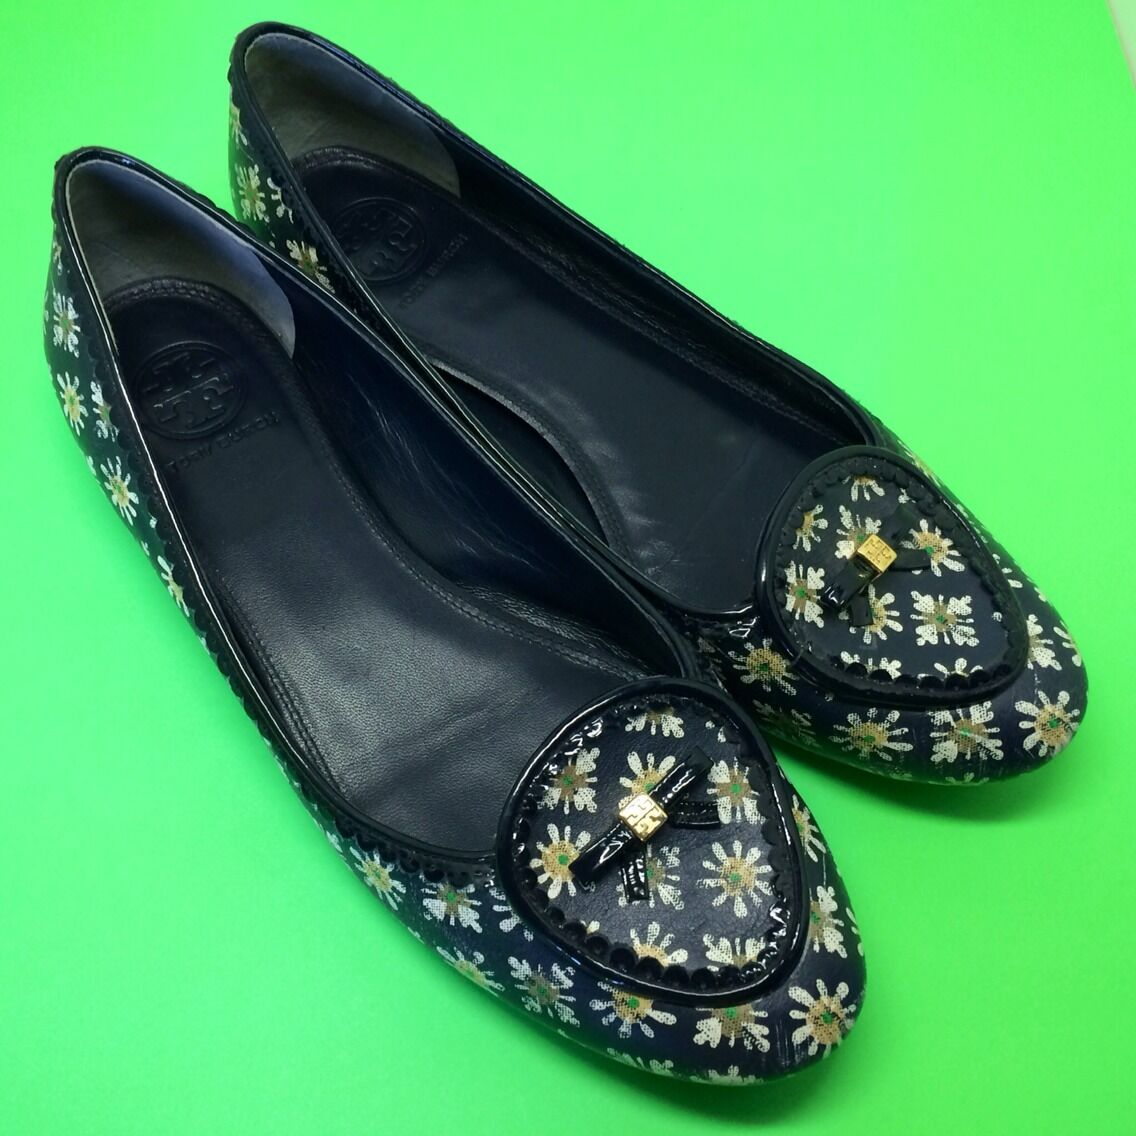 TORY BURCH Dakota Leather Floral Lace Trim Bow Smoking Slipper Loafer shoes 10